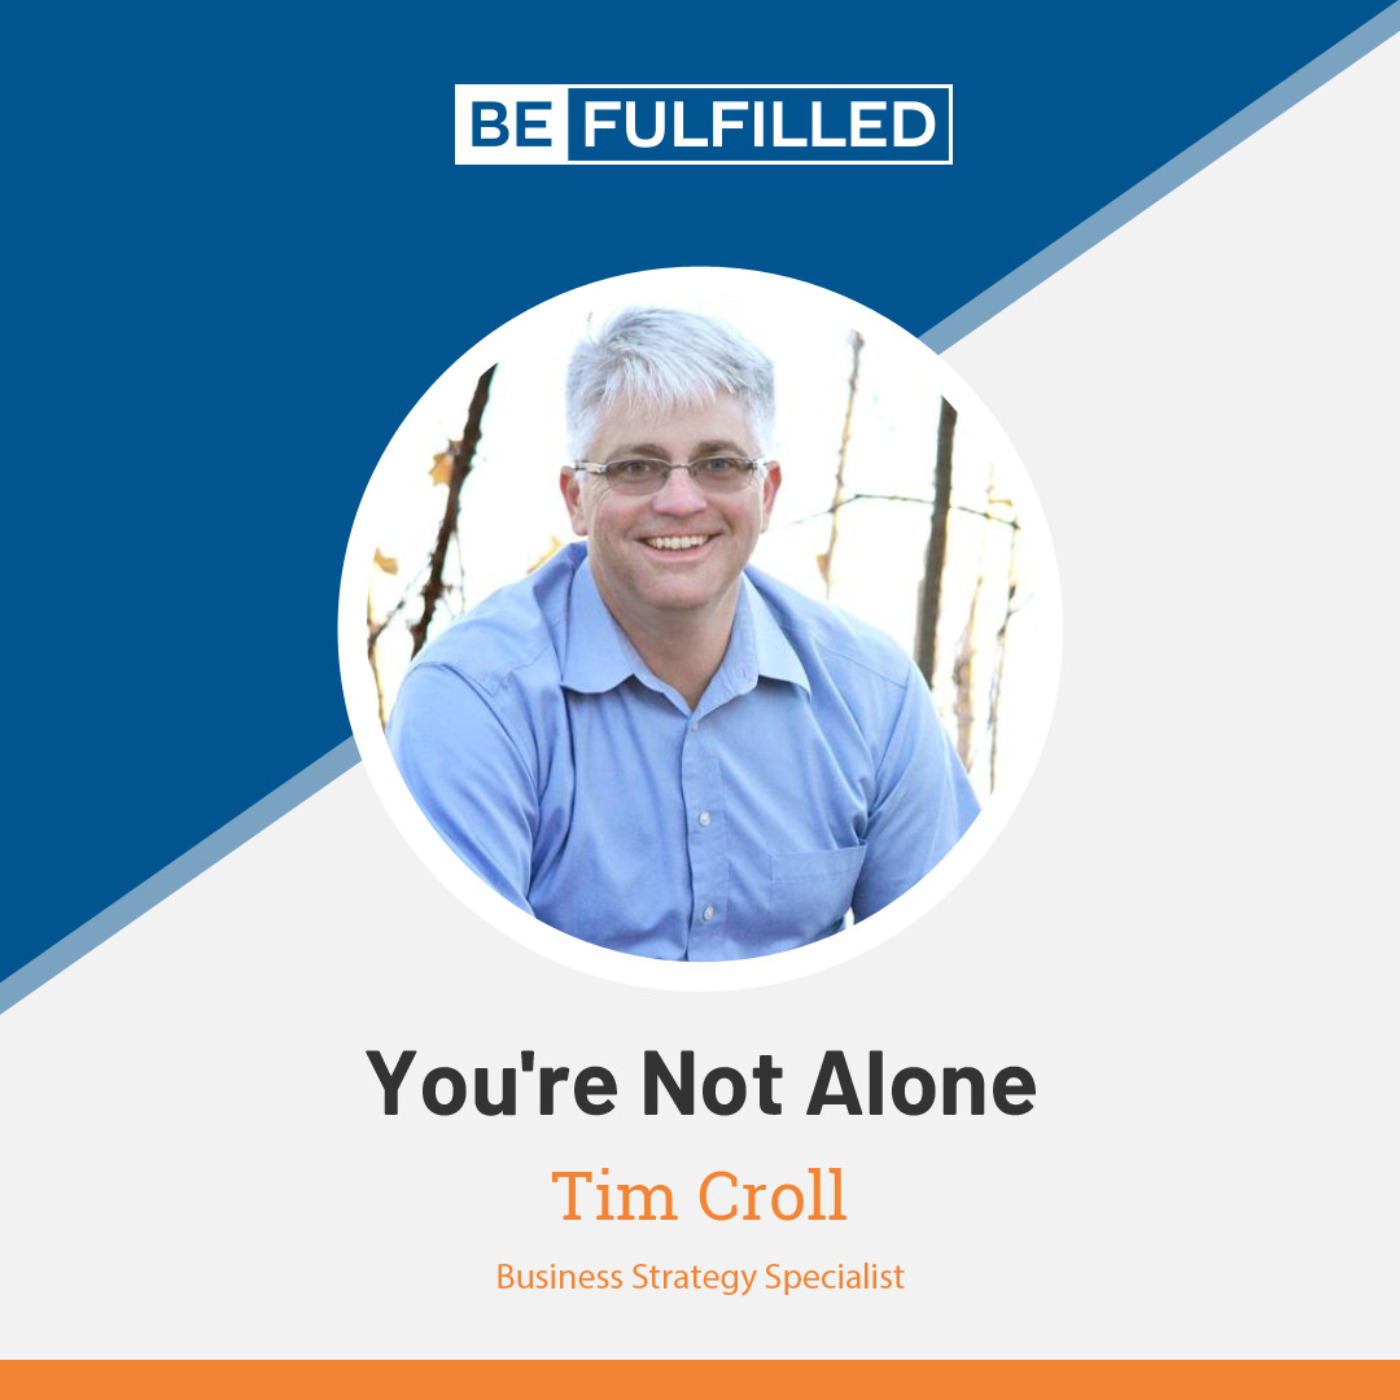 You're Not Alone - Tim Croll